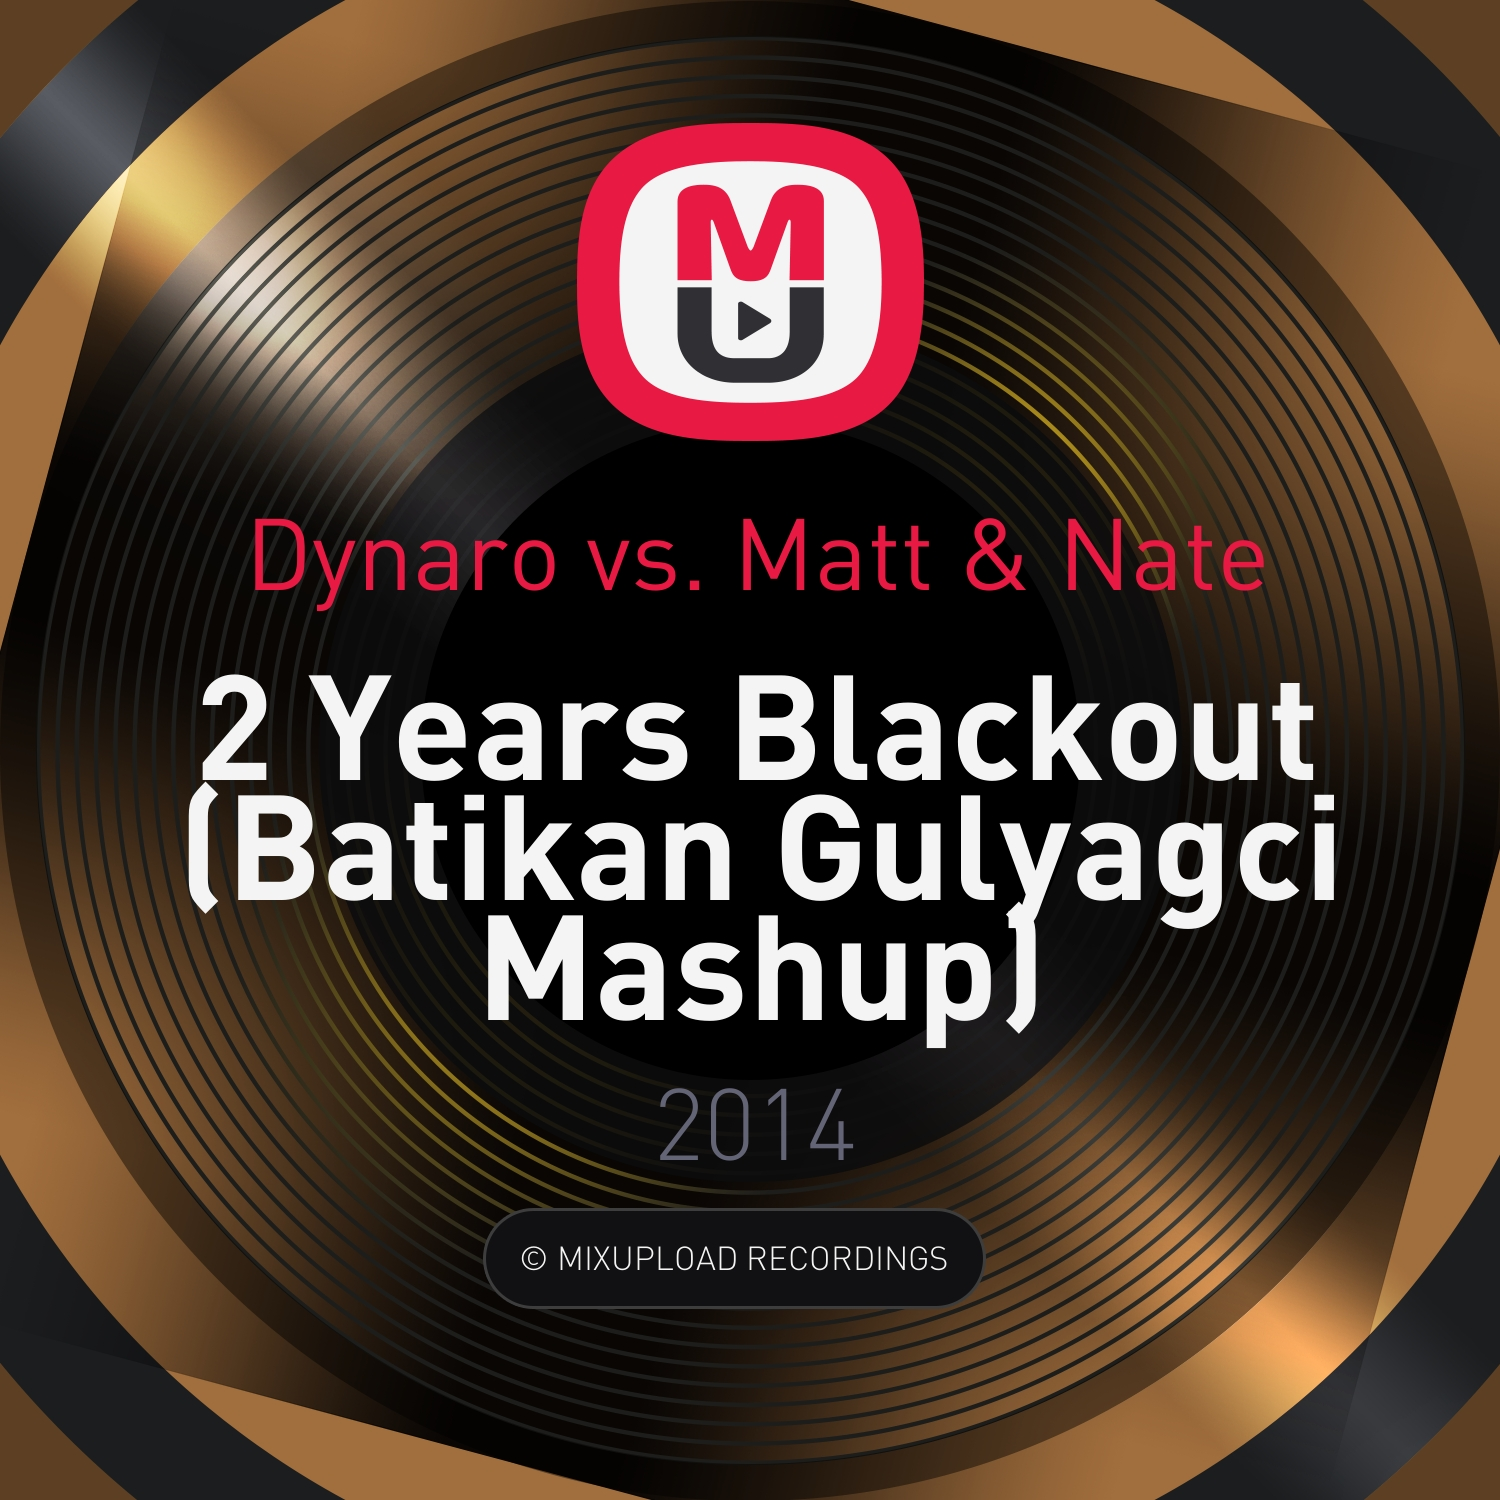 Dynaro vs. Matt & Nate - 2 Years Blackout (Batikan Gulyagci Mashup)